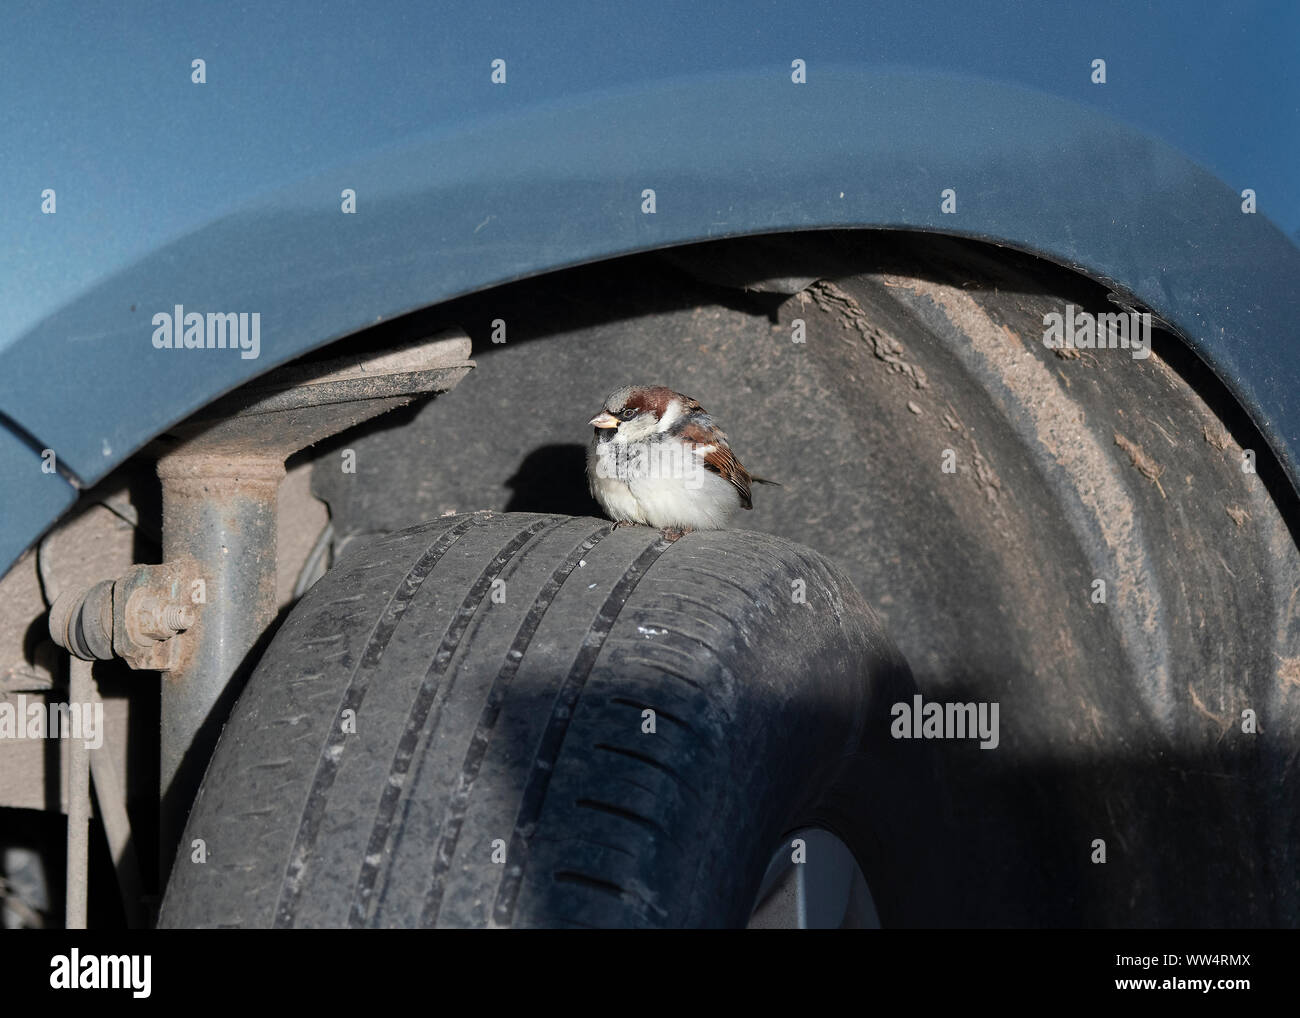 House sparrow (Passer domesticus) sitting on wheel of a car, Mersehead RSPB Reserve, Dumfries, SW Scotland Stock Photo